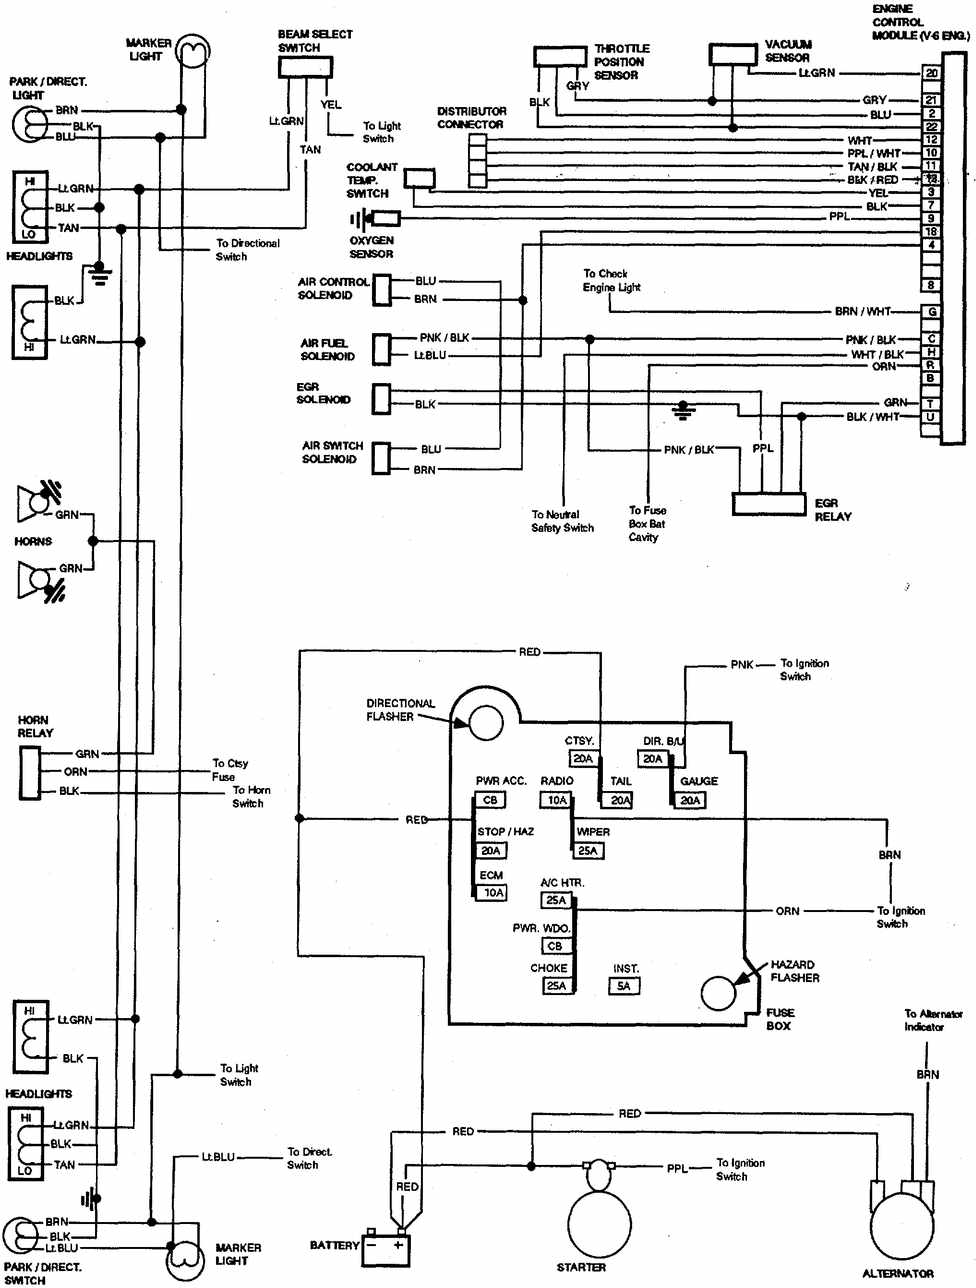 1991 Toyota 4runner Radio Wiring Diagram For Cat6 Cable Chevrolet V8 Trucks 1981-1987 Electrical | All About Diagrams